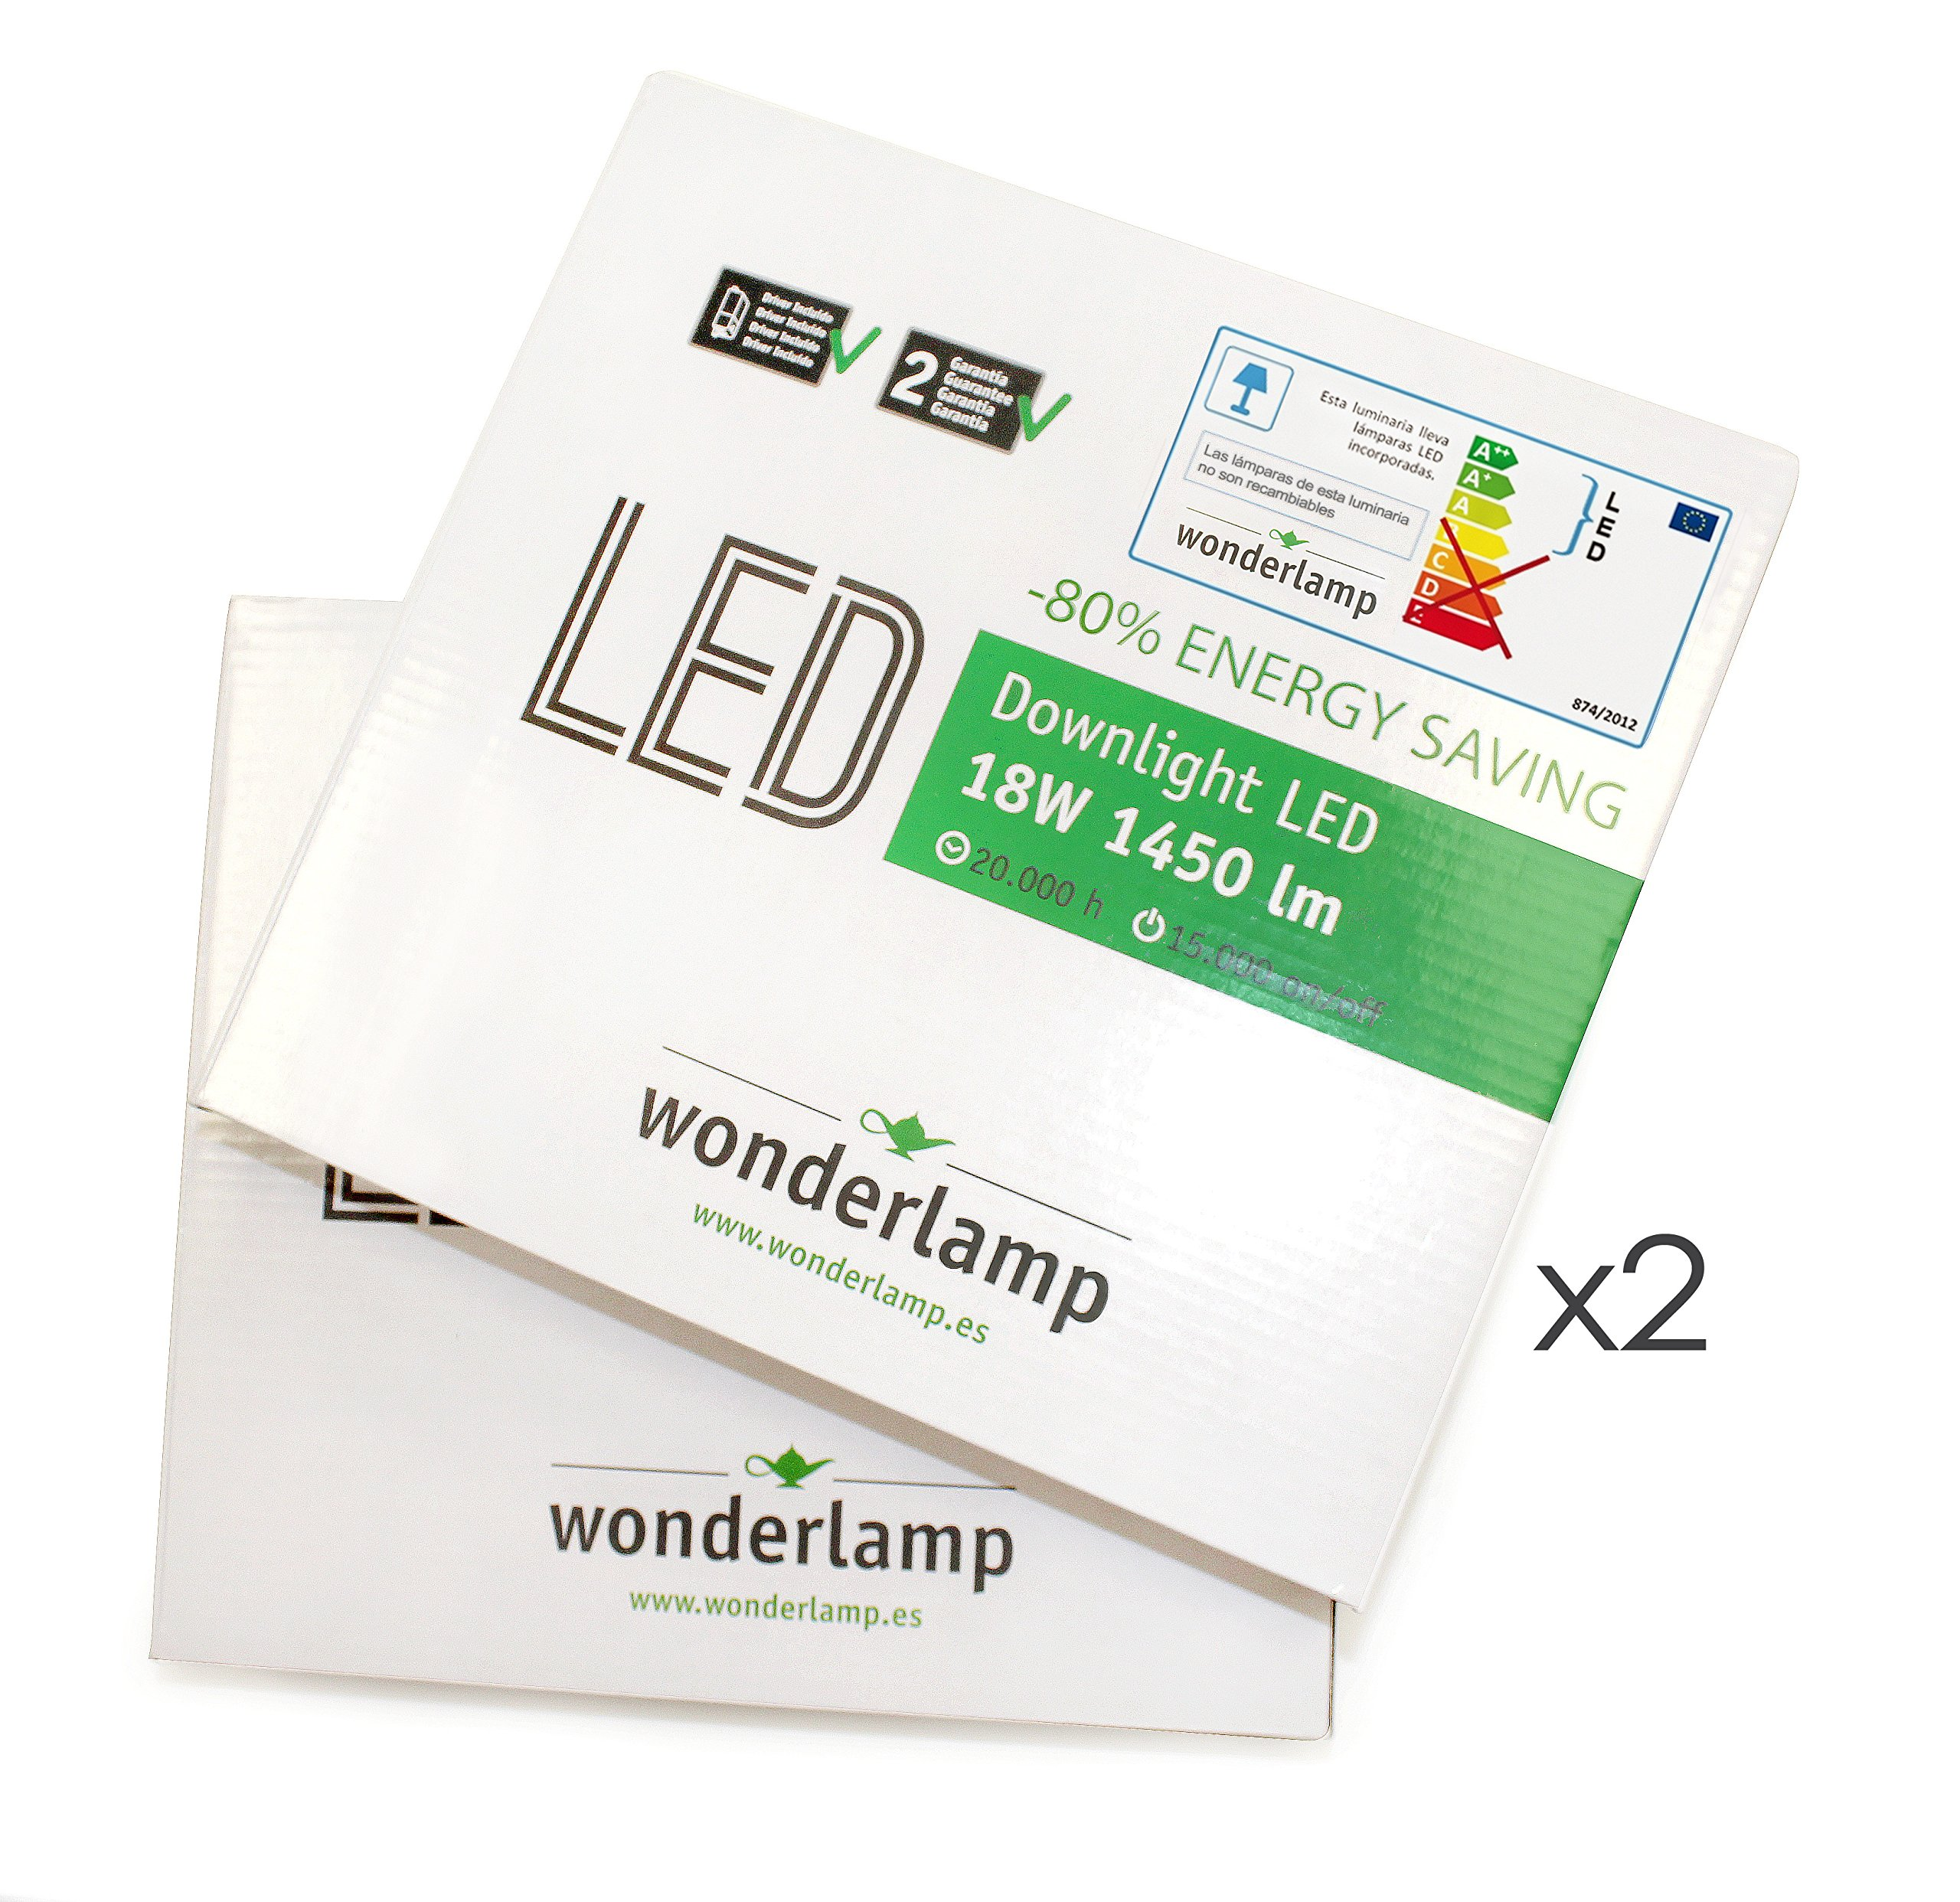 Wonderlamp W-E000048 - Pack 2 x Downlight LED extraplano cuadrado blanco, iluminacion led 18W (1450 lm), 6000K (luz fría). Plafón de techo.